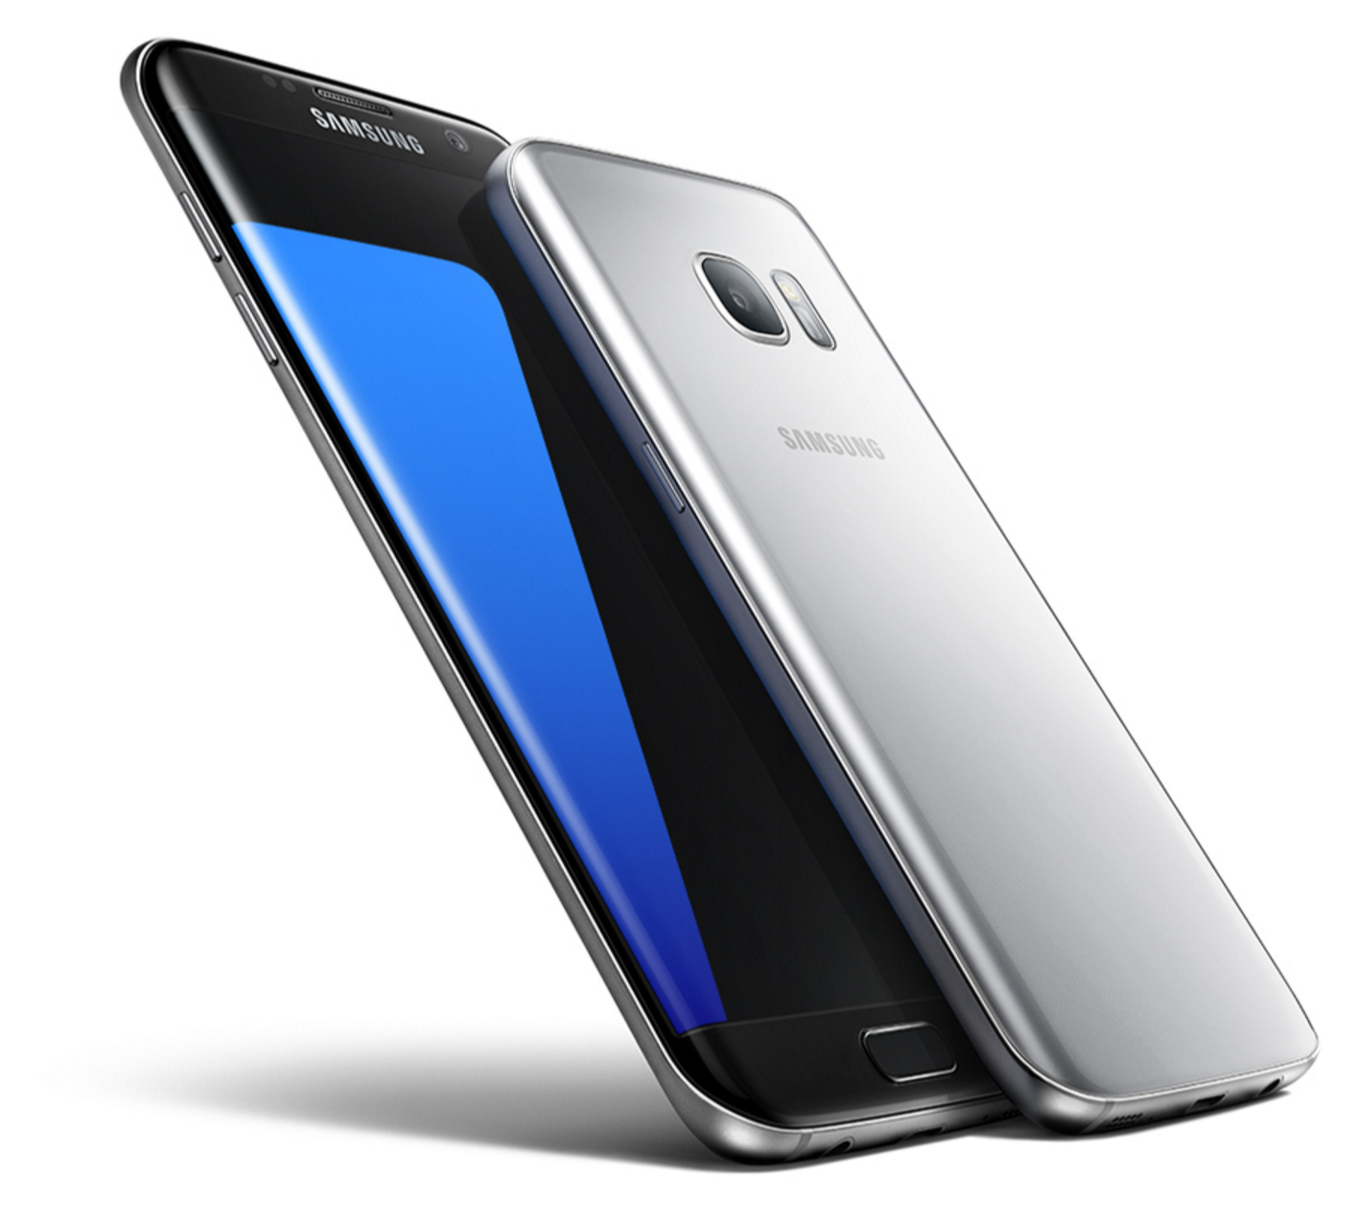 Samsung Galaxy 5.5 -inch dual curved S7 edge left and 5.1-inch S7 right